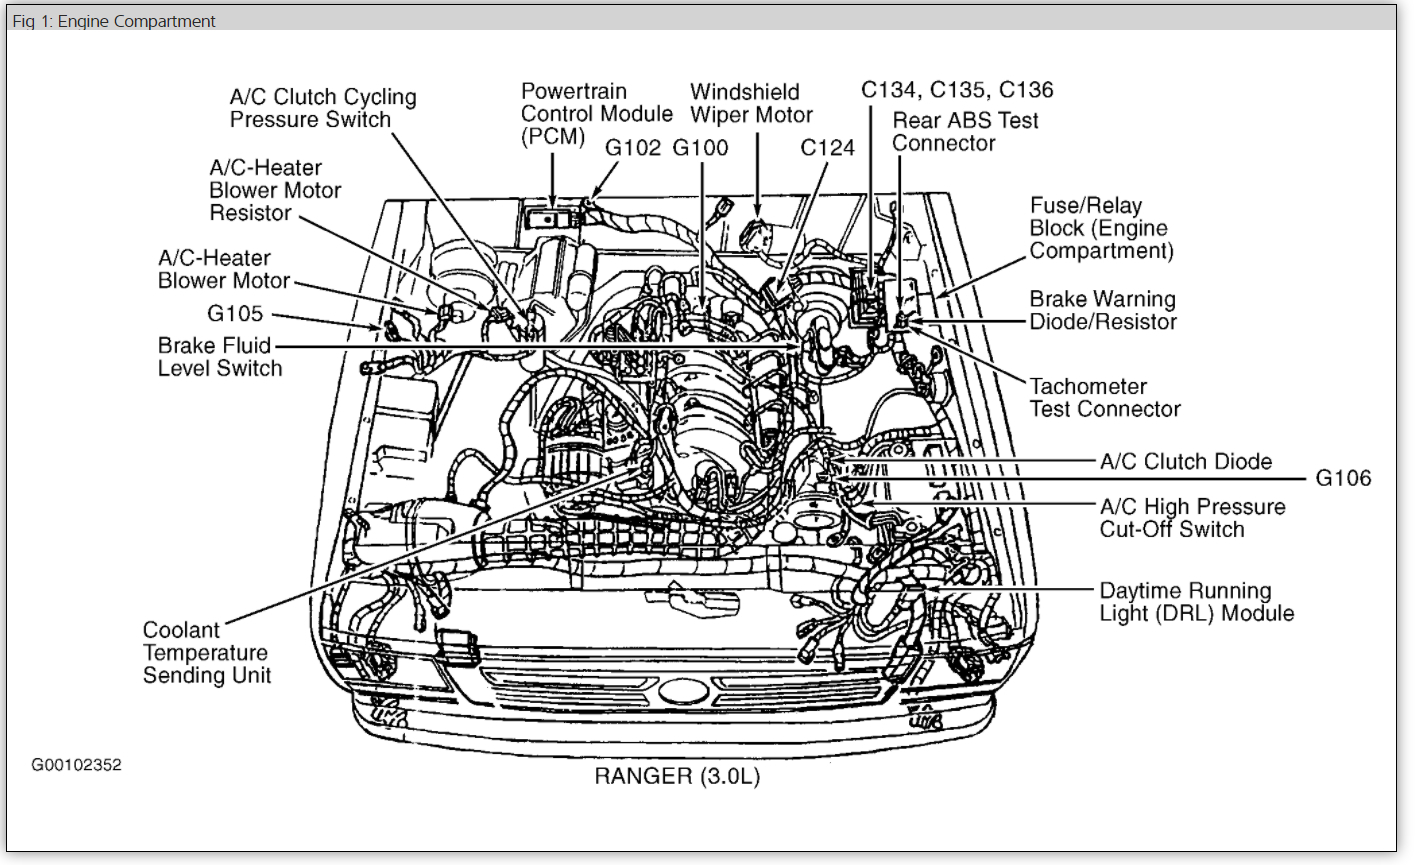 Where Is The Ignition Module Online Manuals Show The Module On